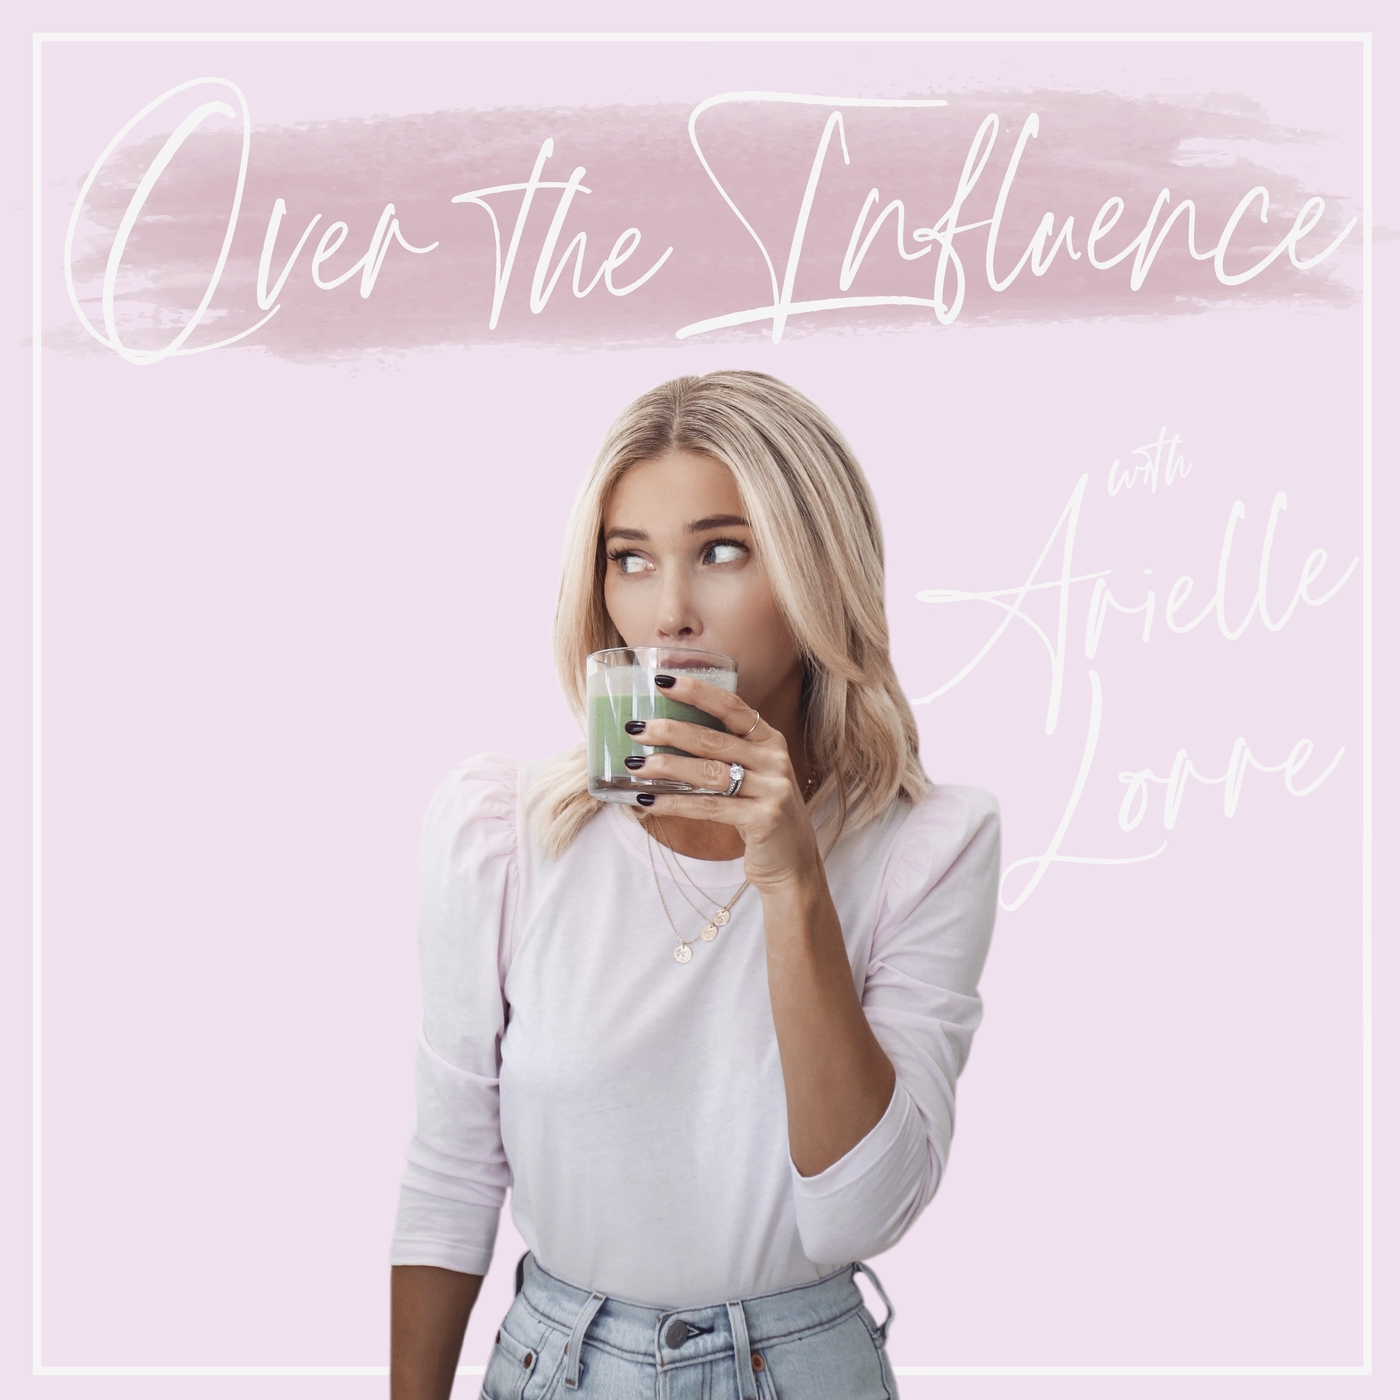 """Kelsey Wells """"On Finding Self-Love, Empowerment and Strength through Exercise"""" on Over the Influence with Arielle Lorre Podcast #102"""